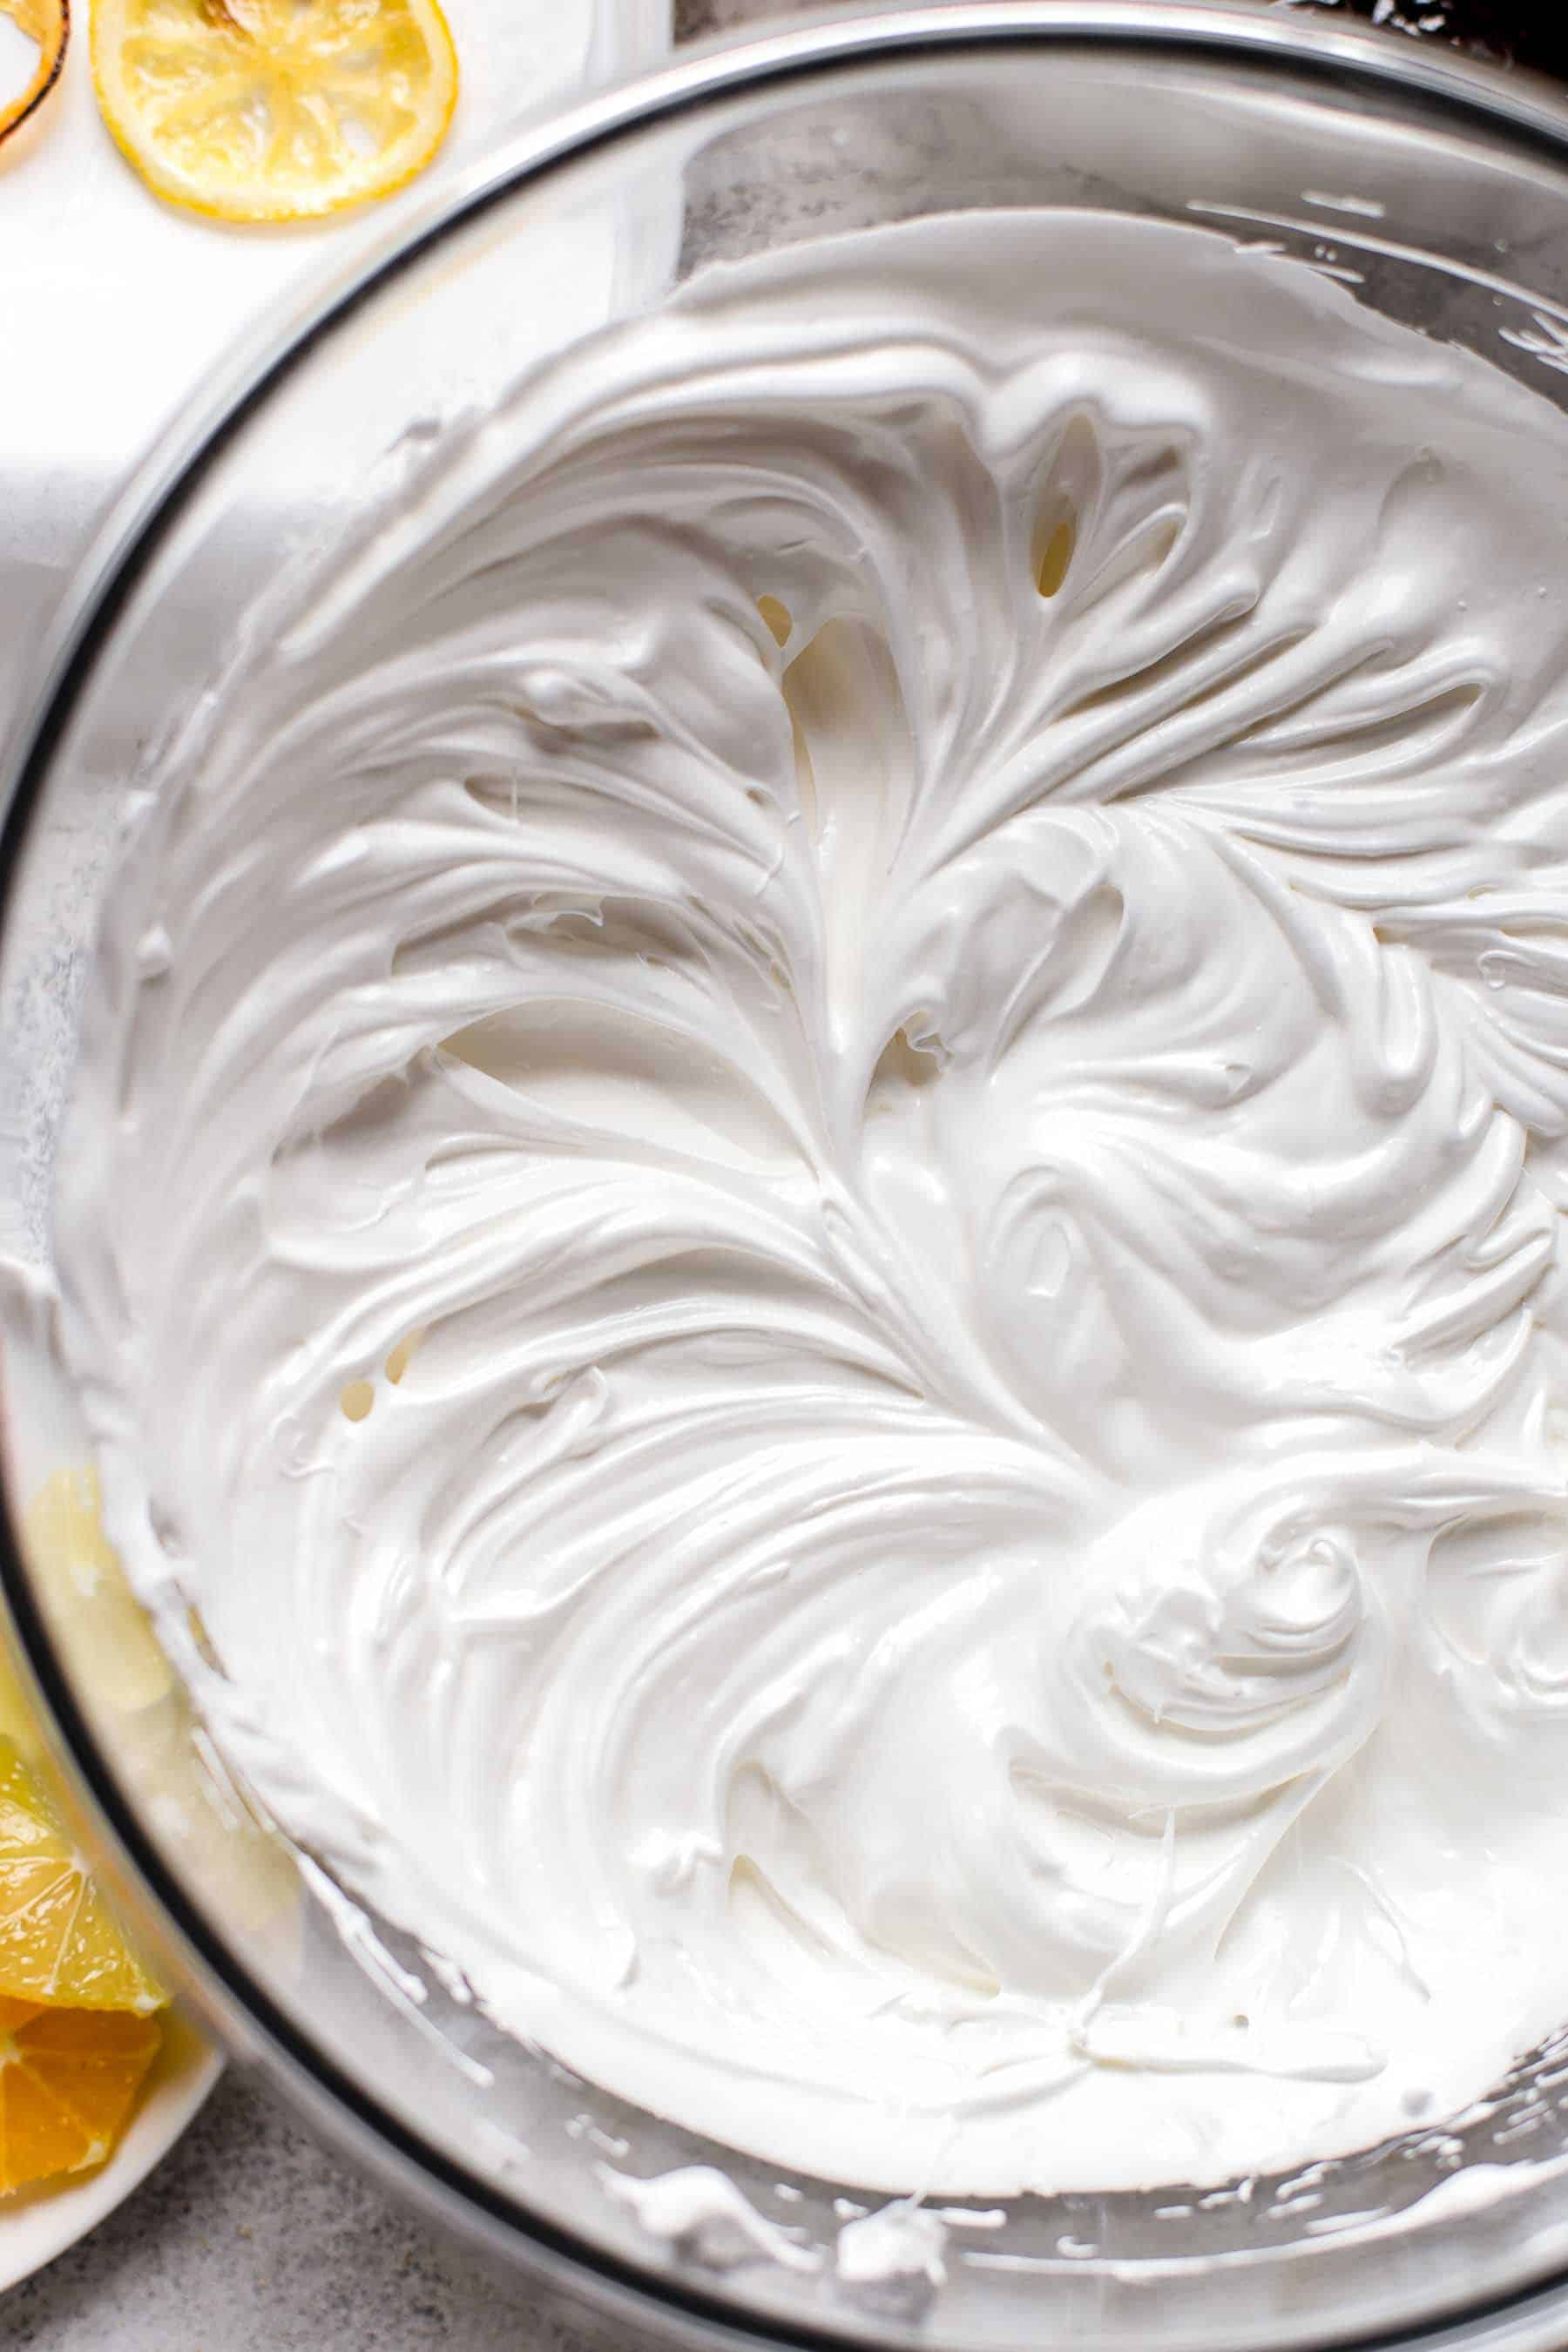 Meringue for decorating lemon cheesecake